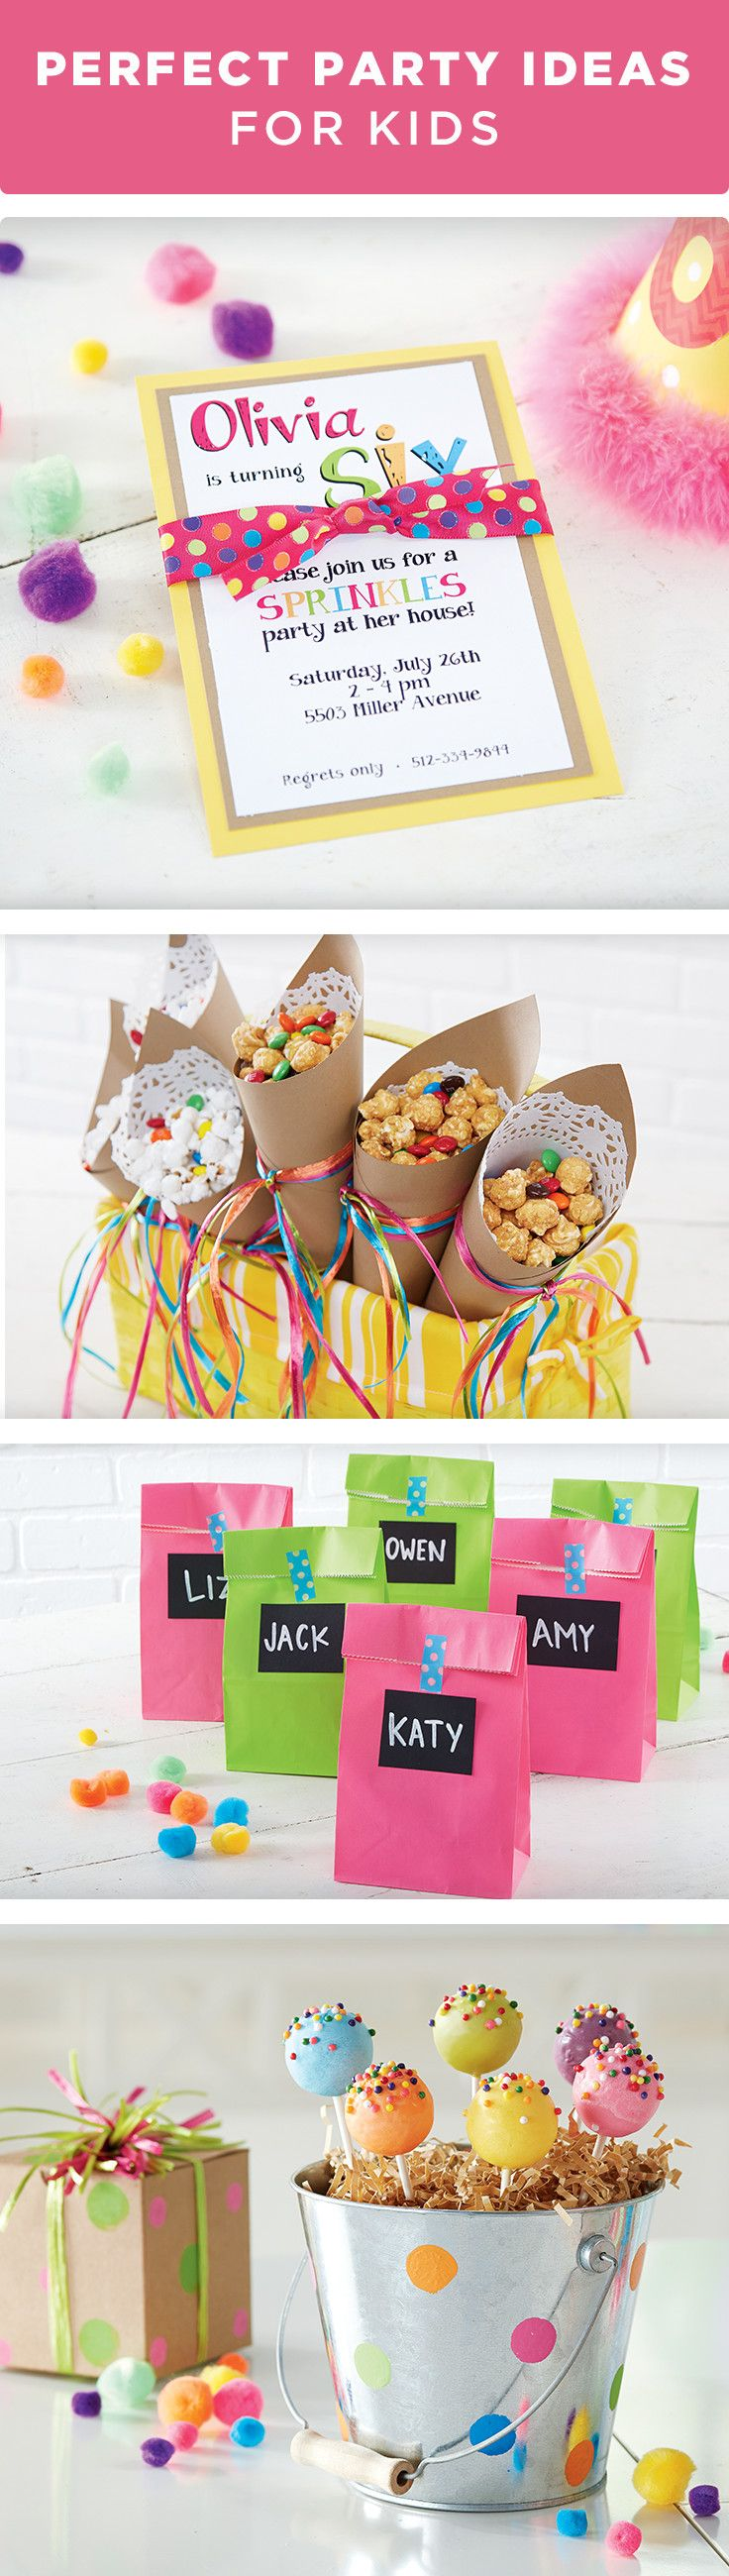 1000 images about kids crafts on pinterest kids crafts for Michaels crafts birthday parties